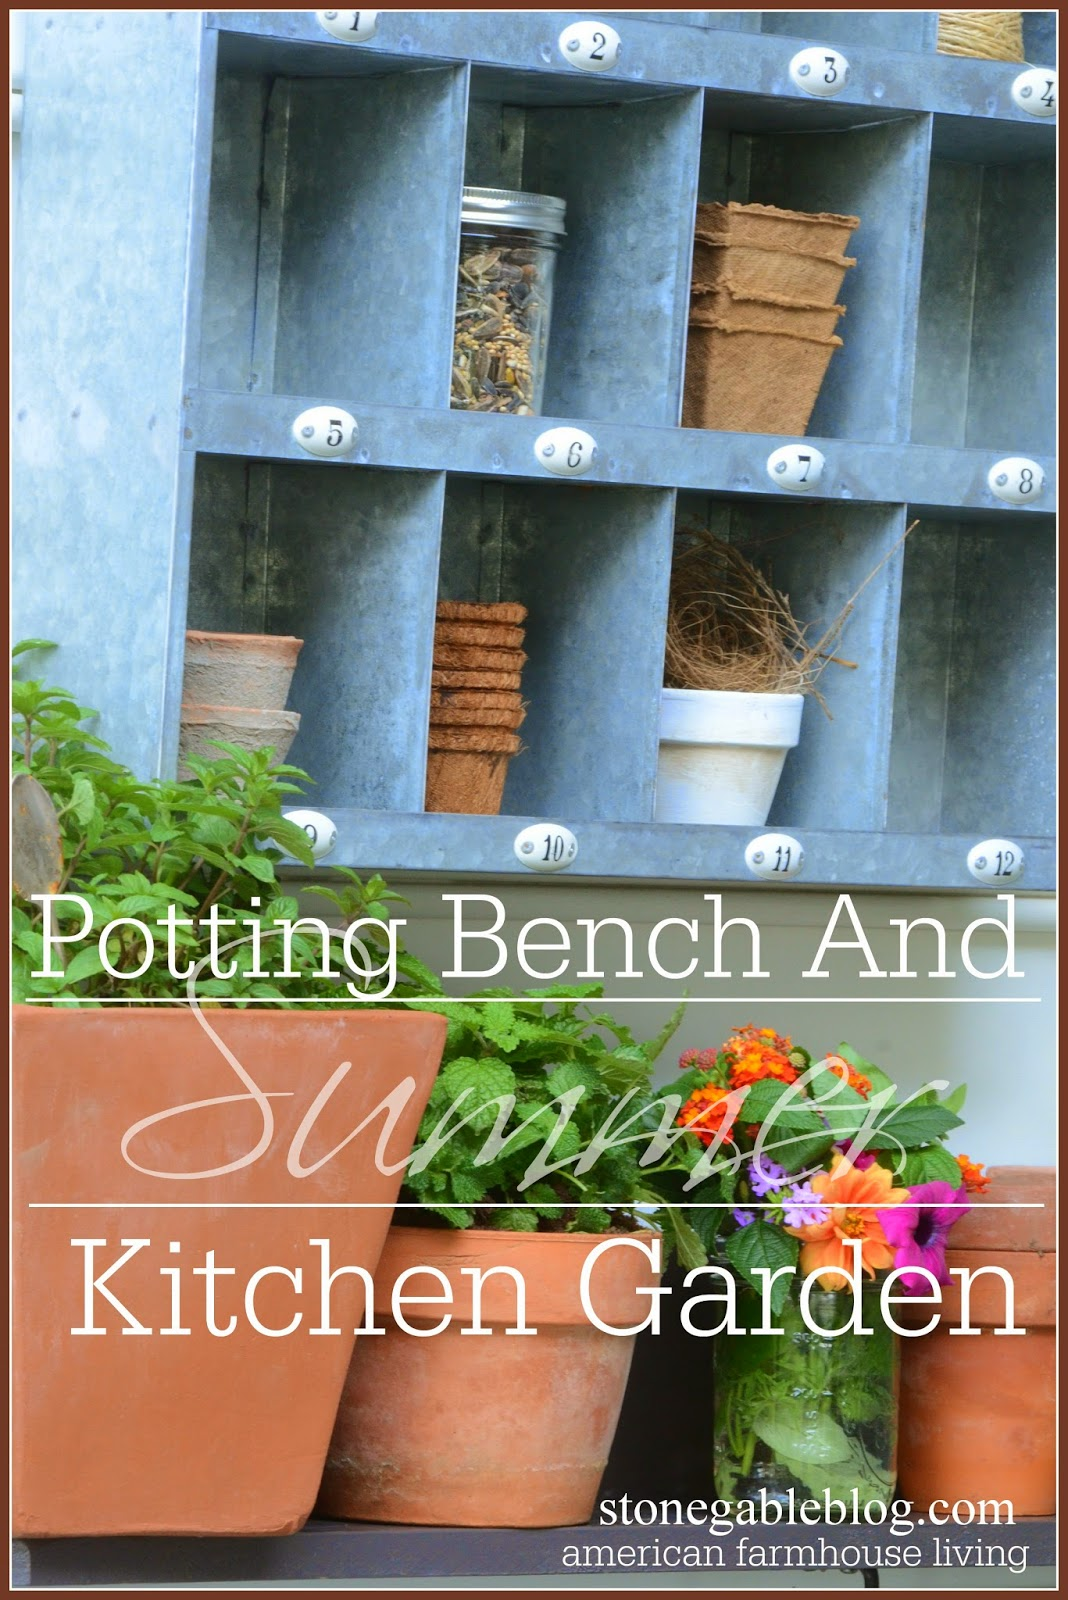 Outstanding Summer Potting Bench And Kitchen Garden Stonegable Evergreenethics Interior Chair Design Evergreenethicsorg